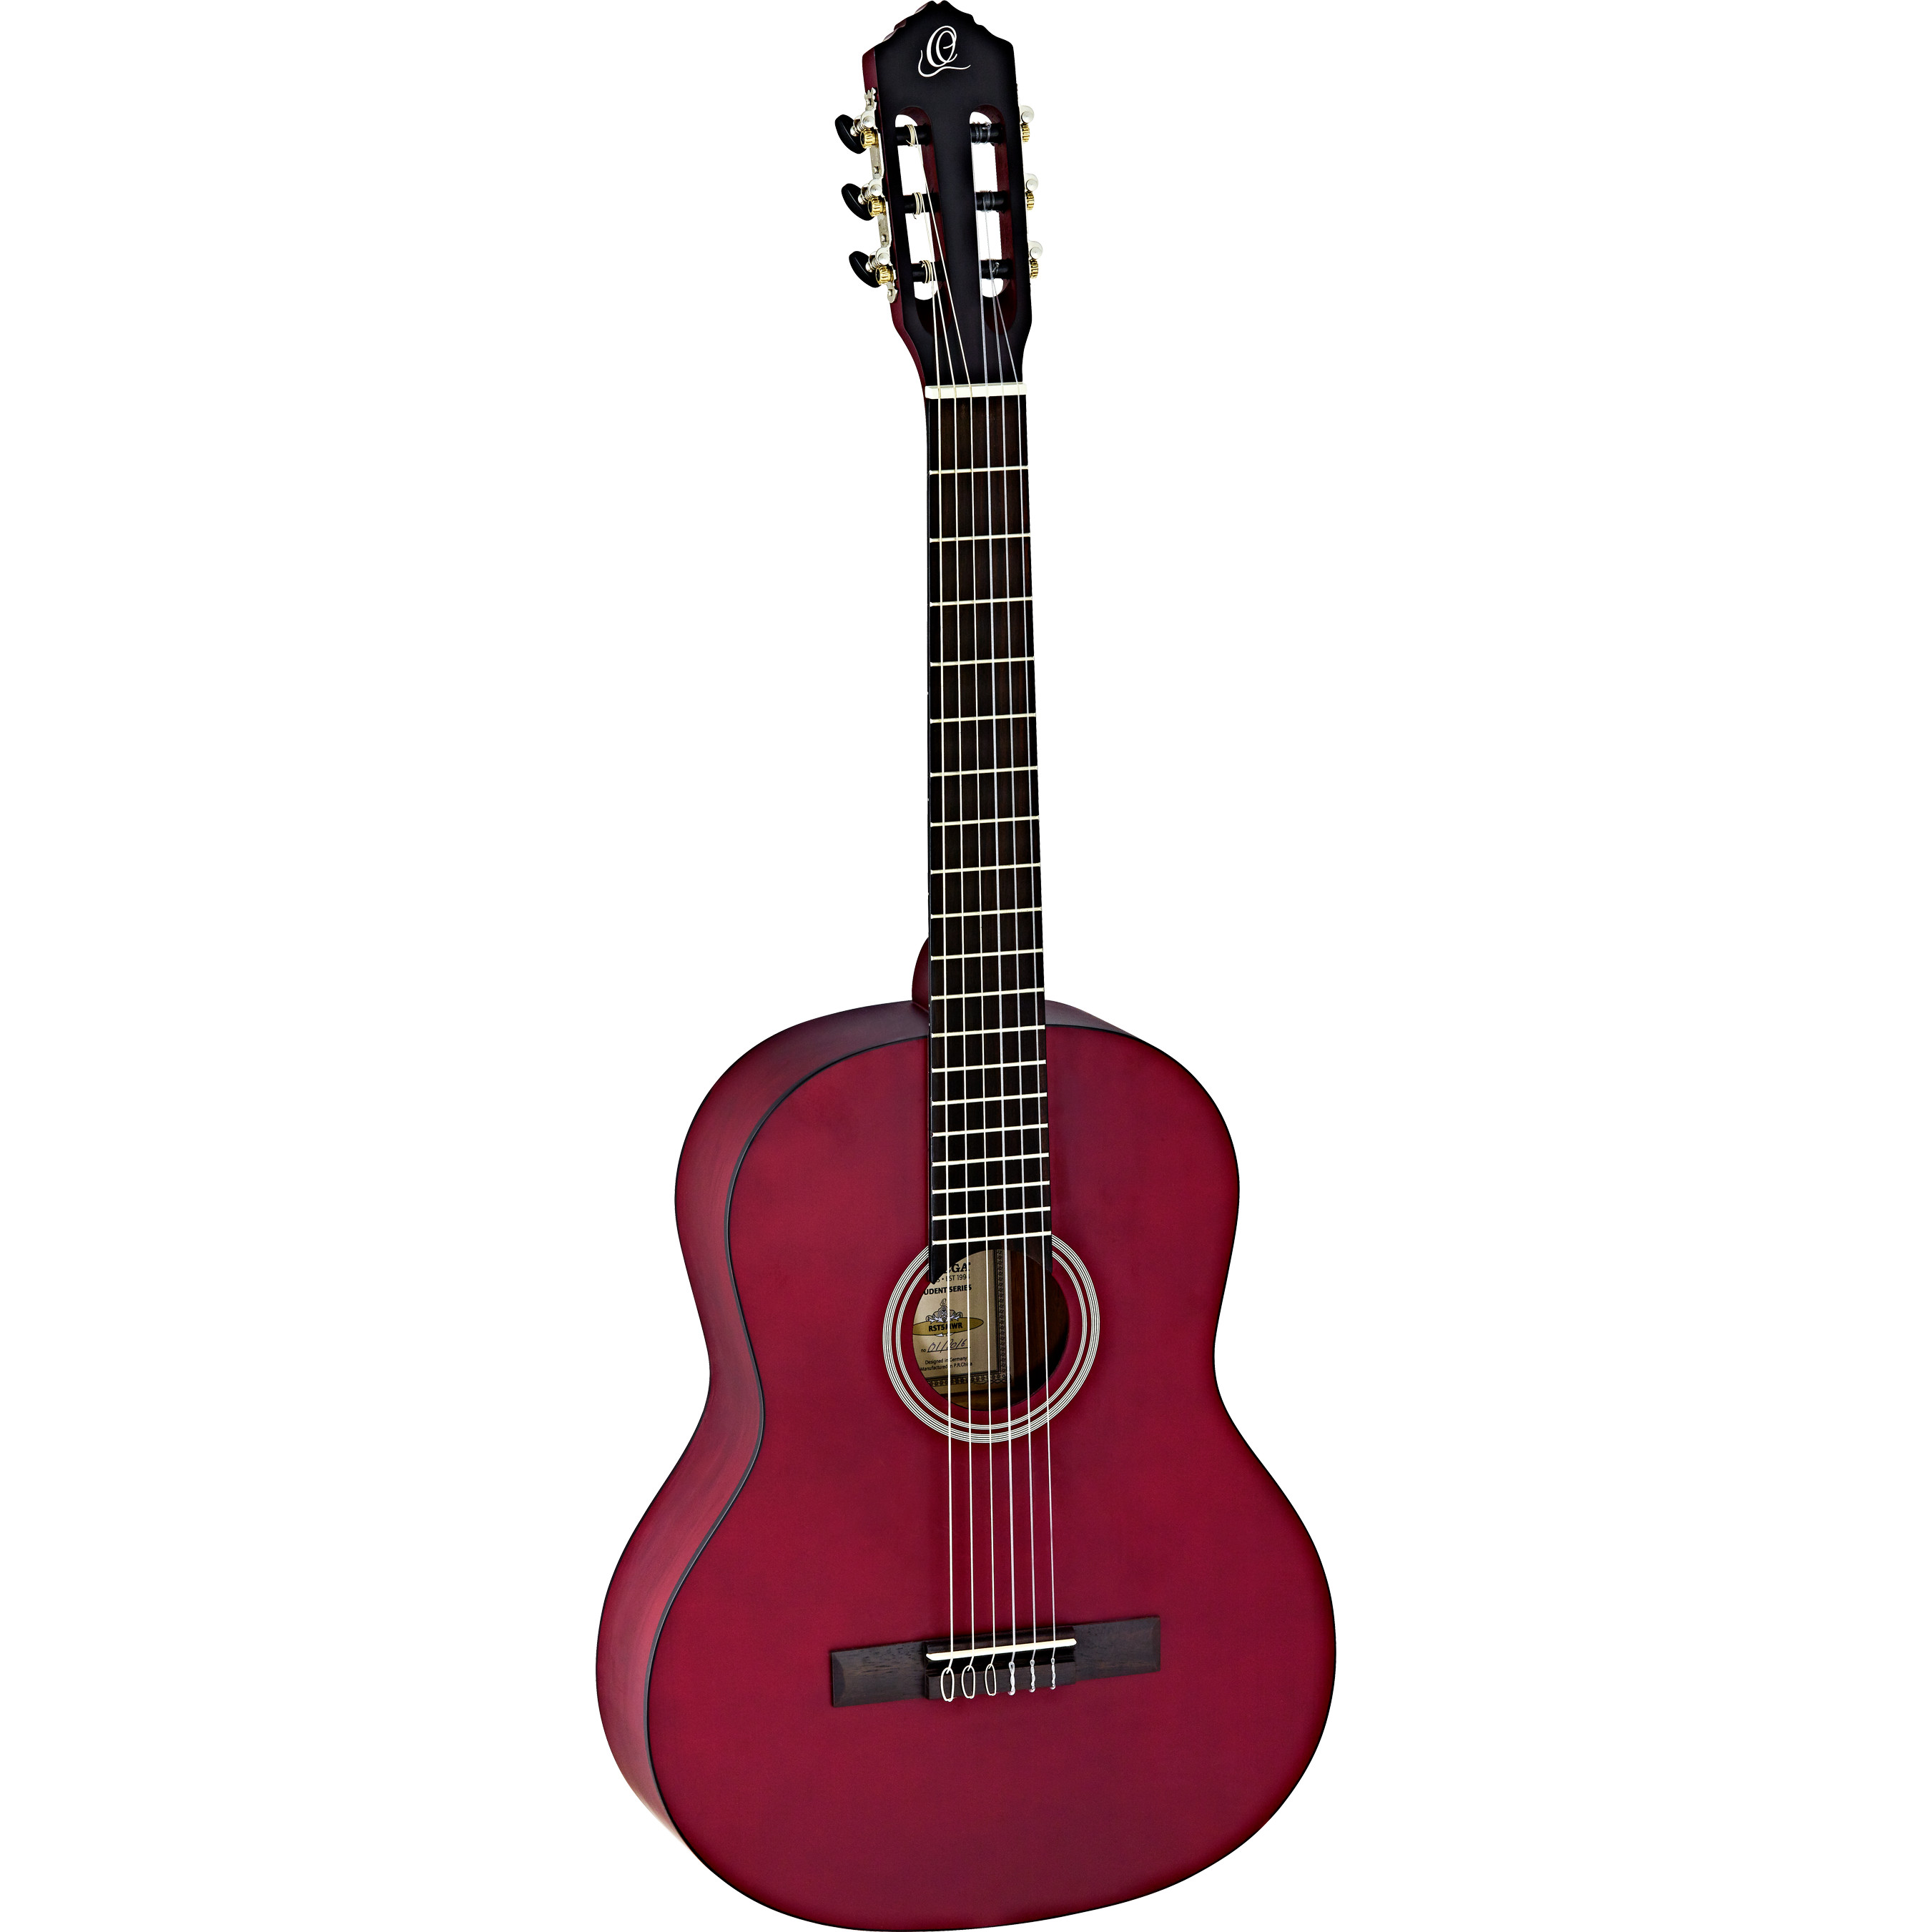 Ortega Student Series RST5M full size classical guitar, red